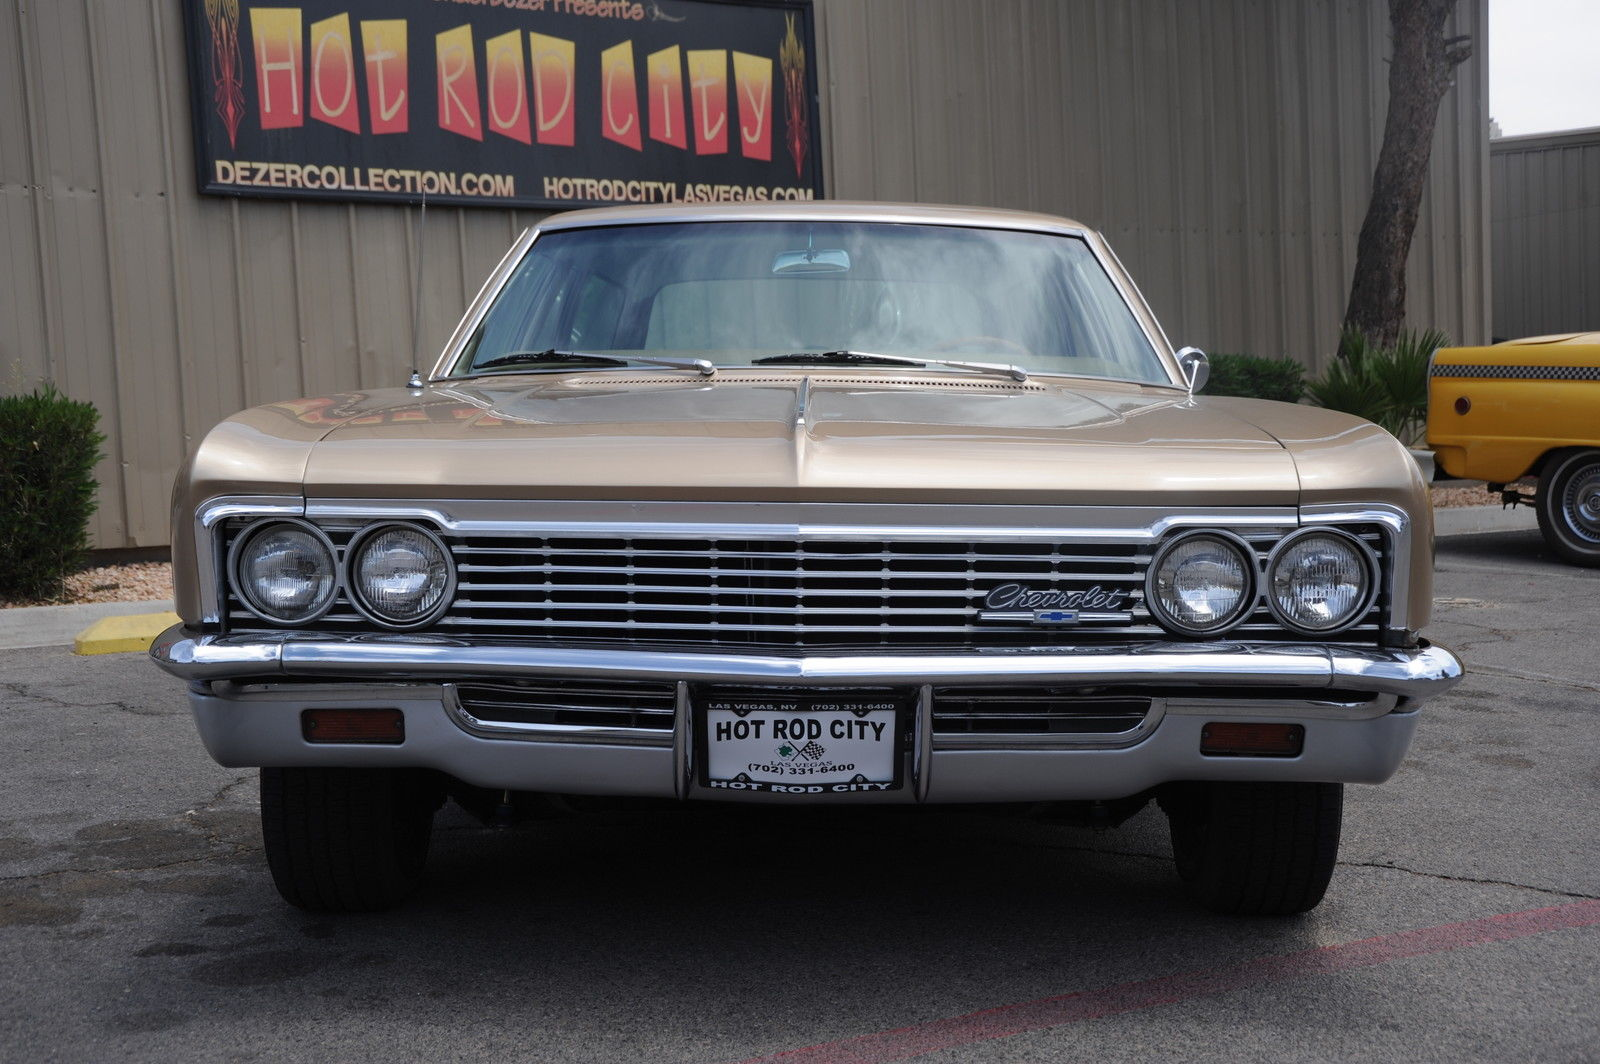 1966 Chevrolet Impala Station Wagon Cold Ac Clean Flowmasters Chevy Caprice Tunes Etc